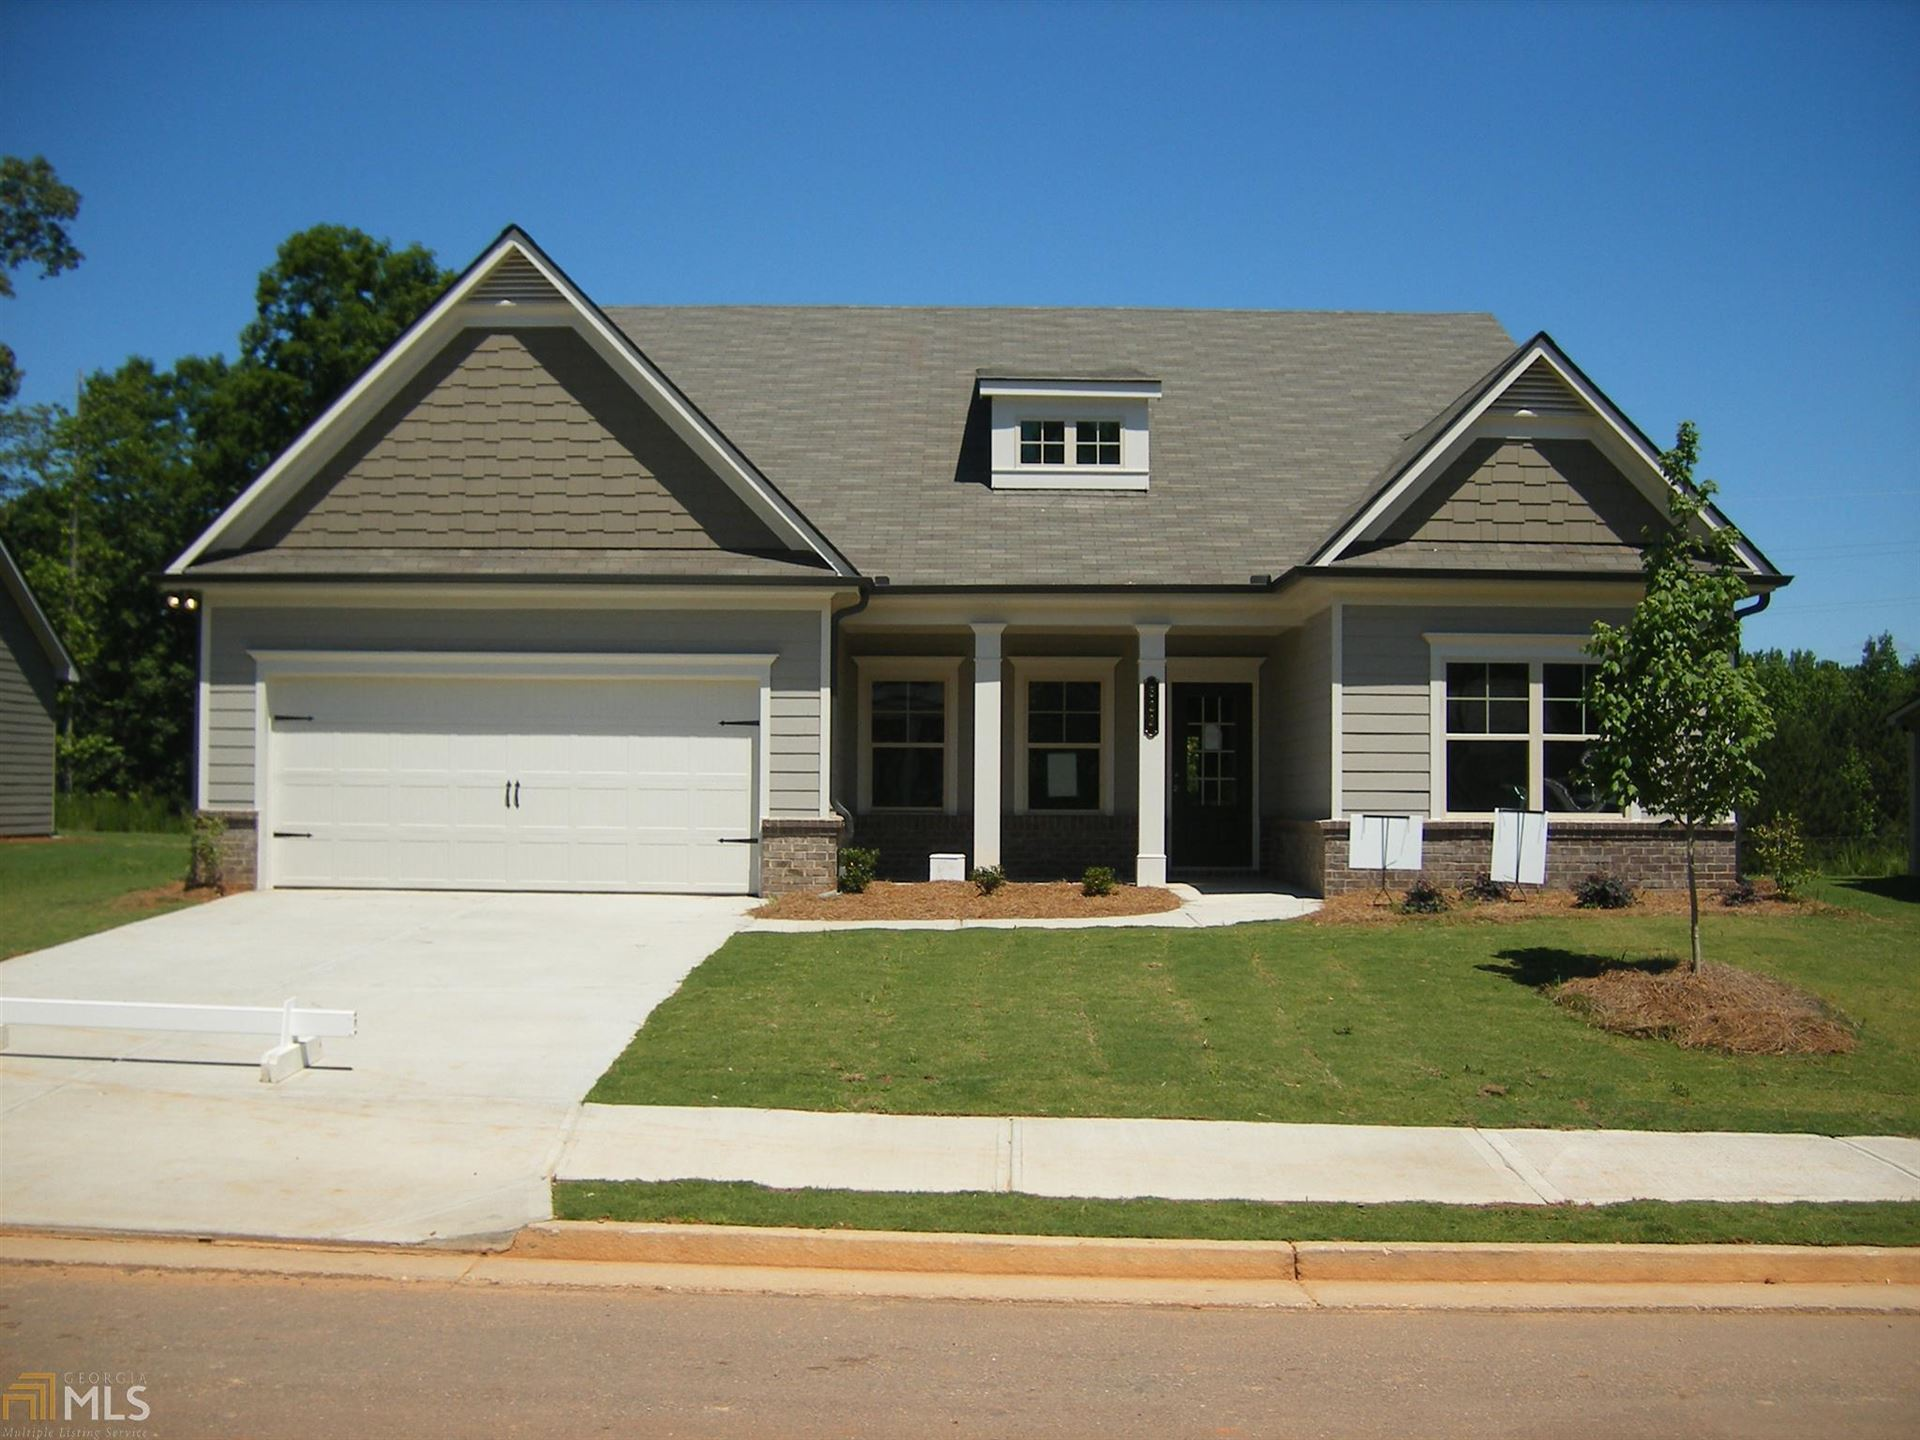 522 Gadwell Cir, Jefferson, GA 30549 - #: 8720876